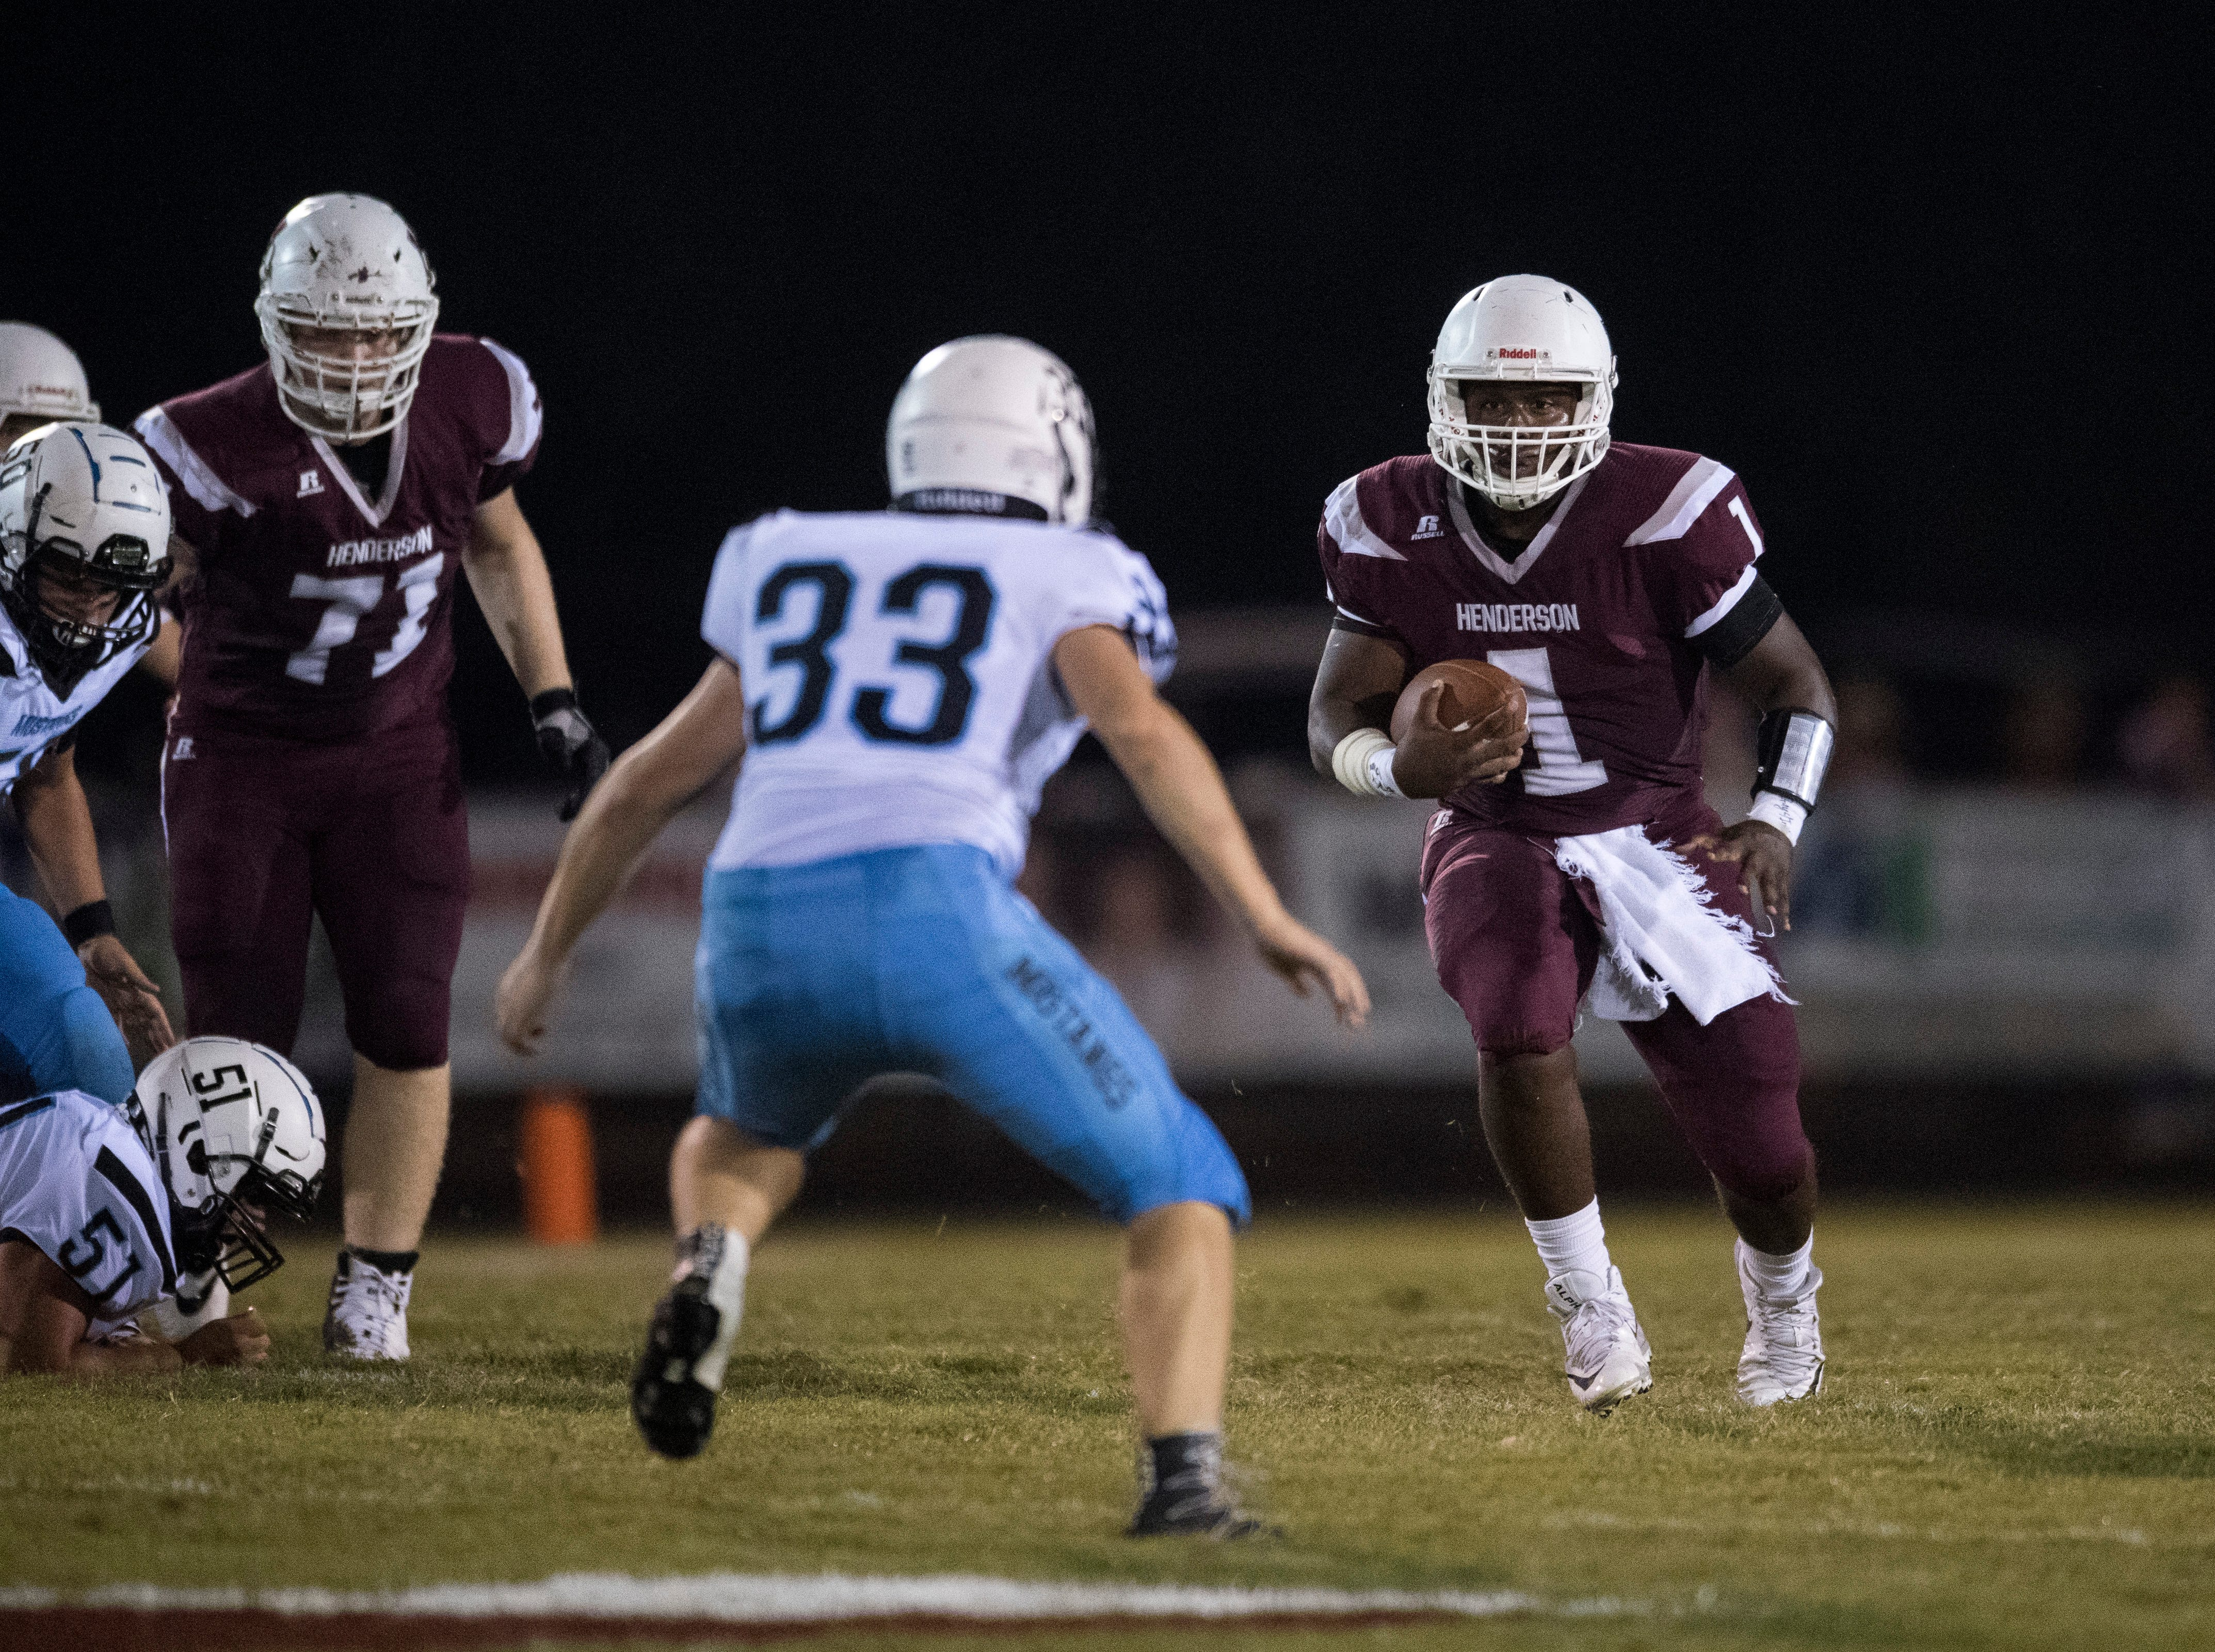 Henderson's Quarterback Skip Patterson (1) carries the ball during the Henderson vs Muhlenberg County game at Colonel Stadium Friday, Sept. 28, 2018. The Henderson County Colonels won, 61-6.